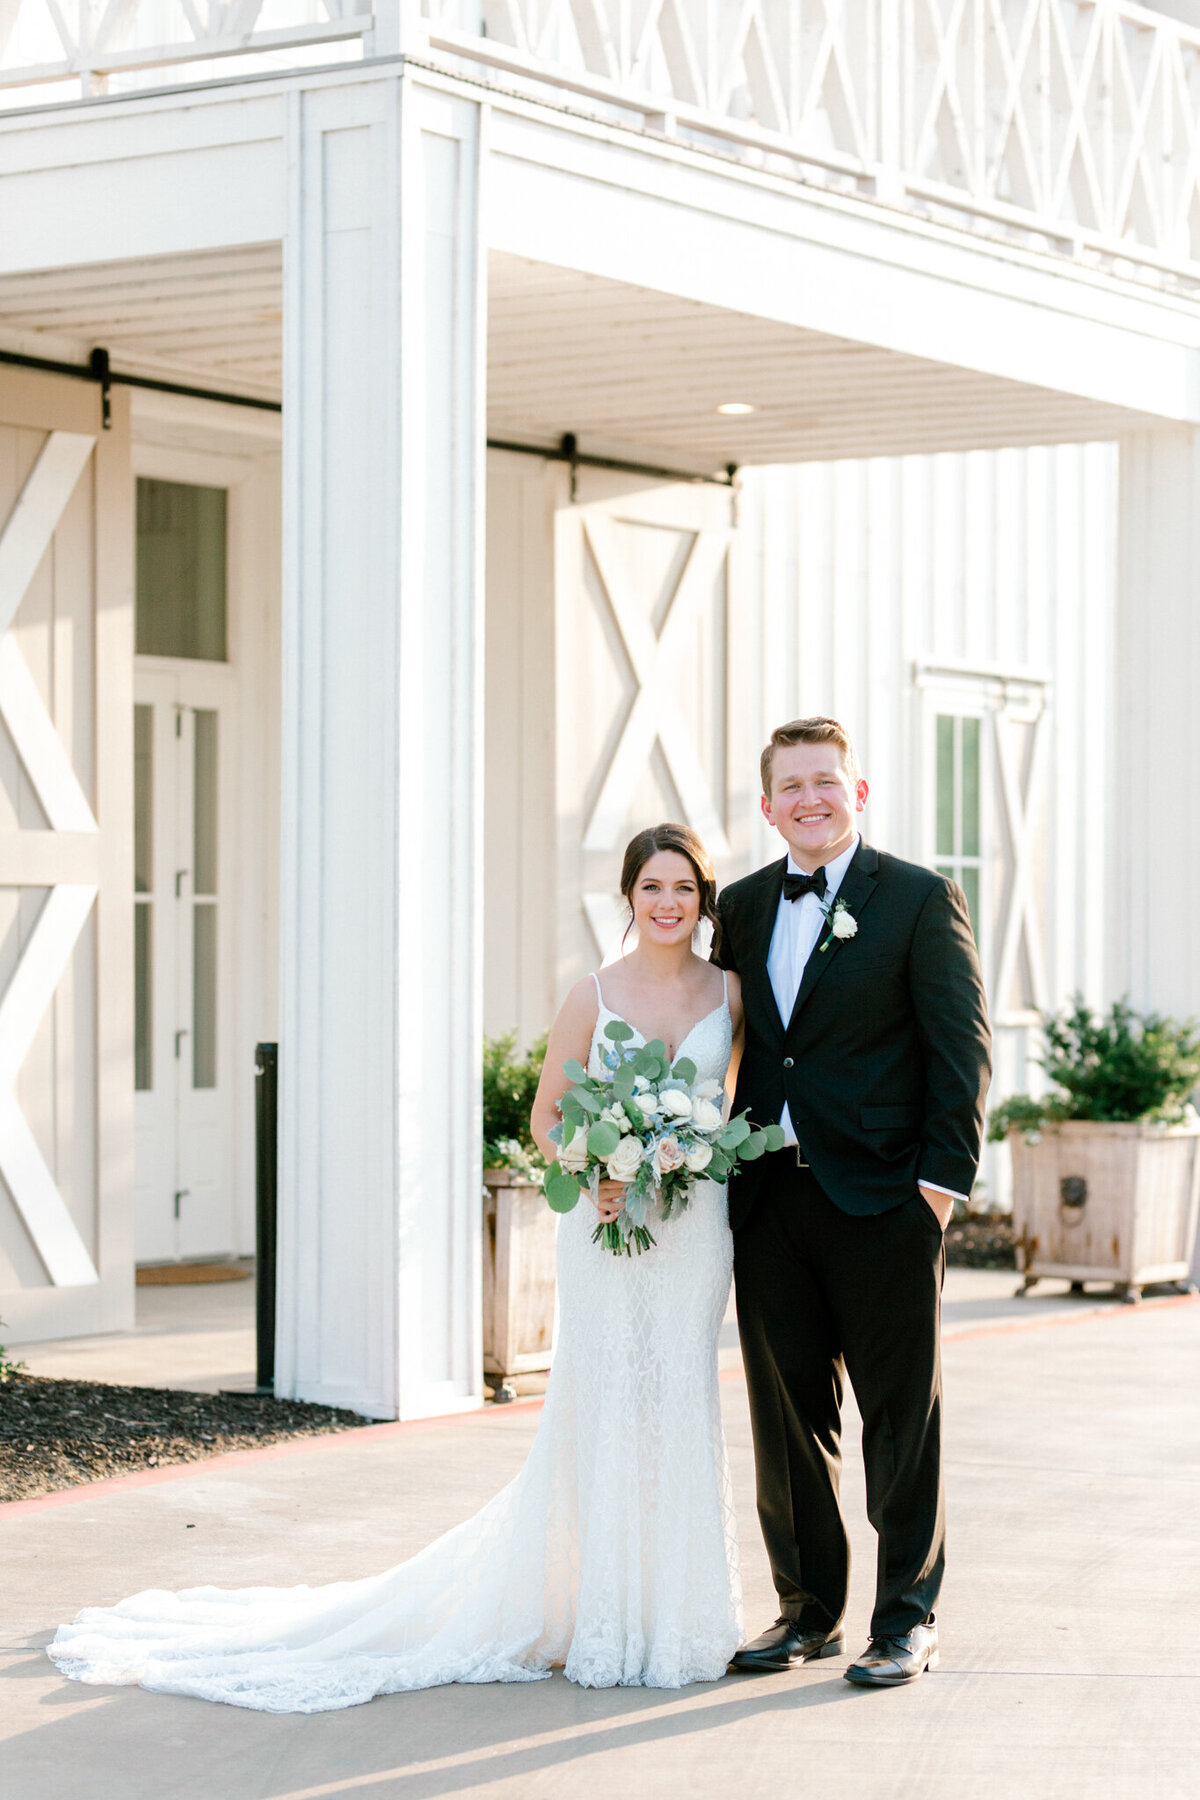 Anna & Billy's Wedding at The Nest at Ruth Farms | Dallas Wedding Photographer | Sami Kathryn Photography-174